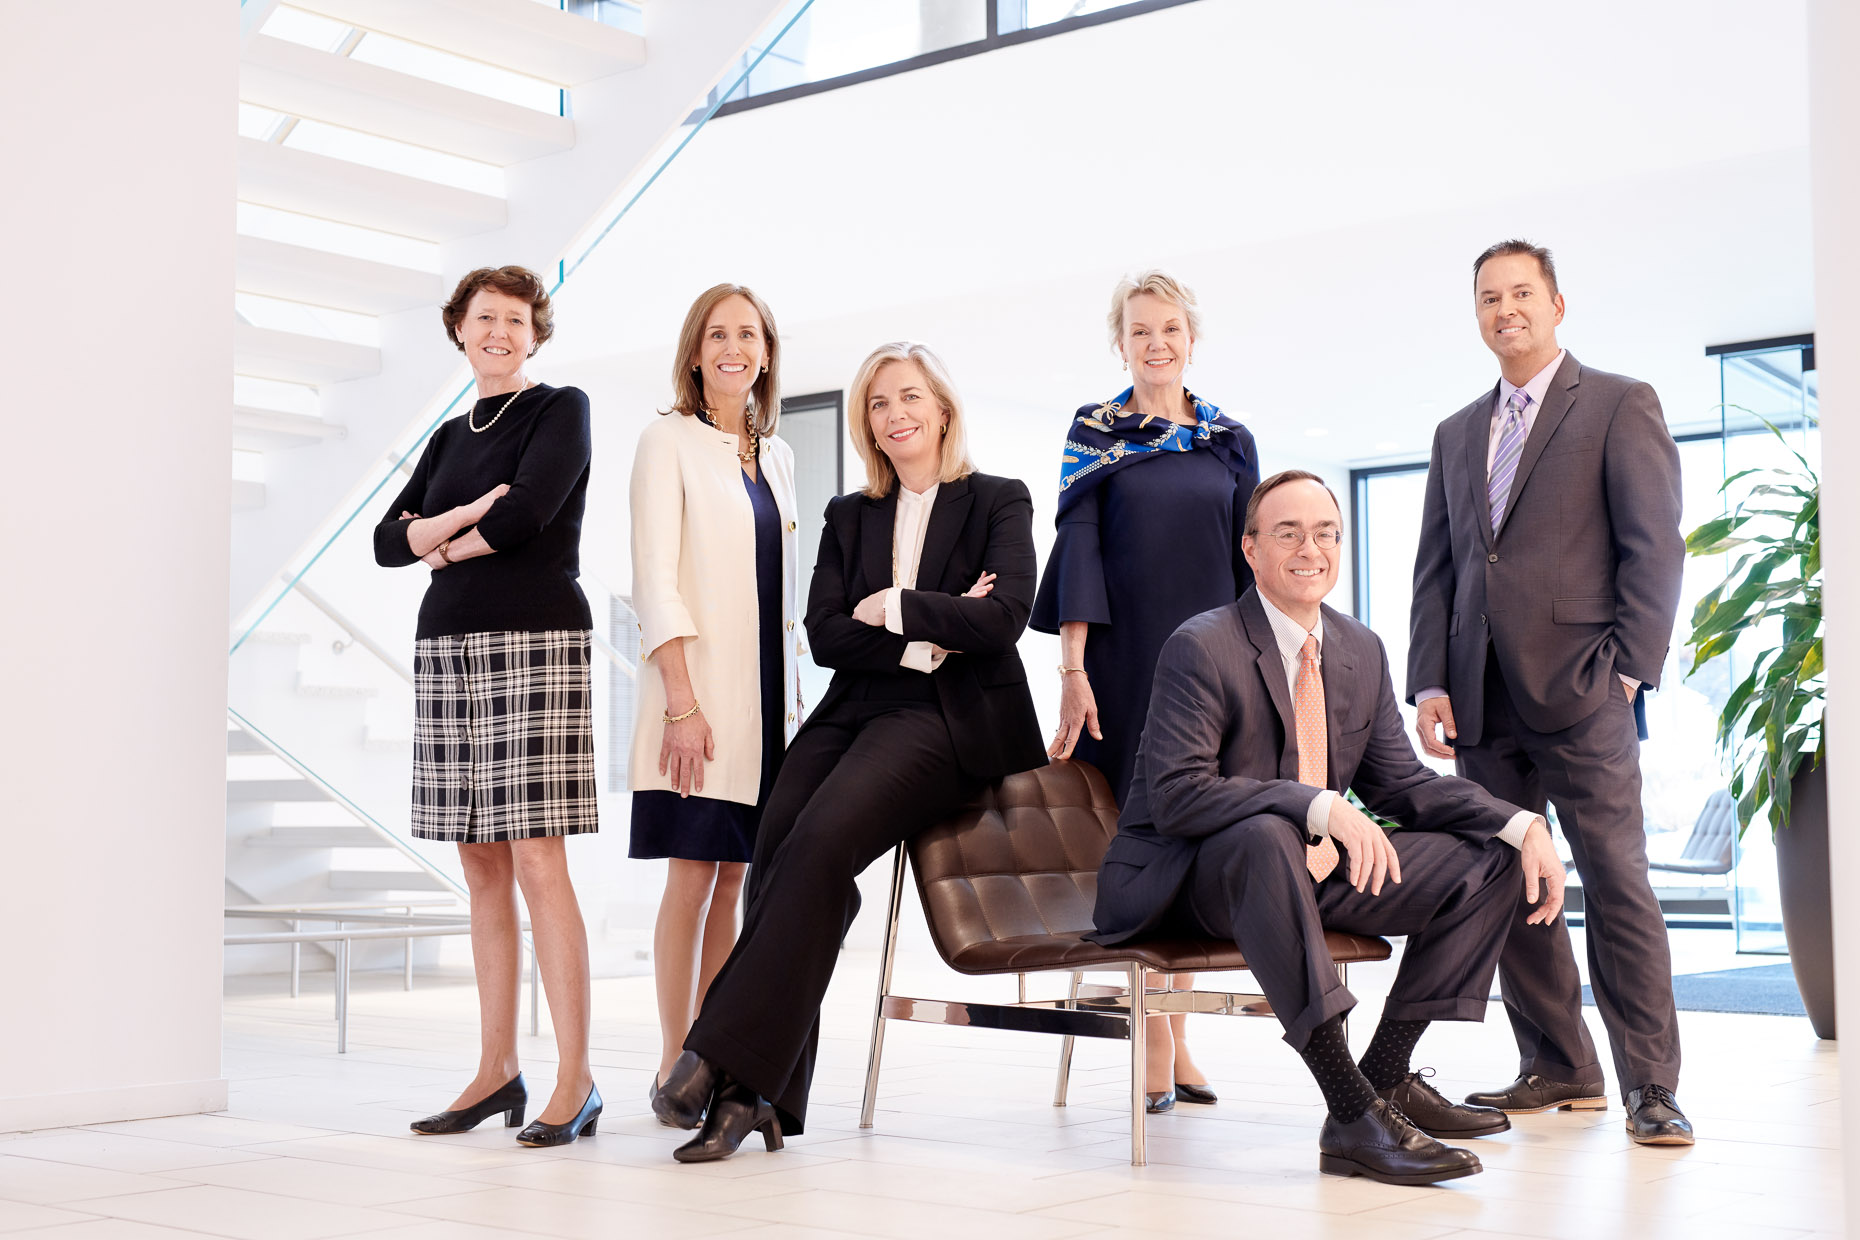 Penn Trust Executive Leadership Portrait